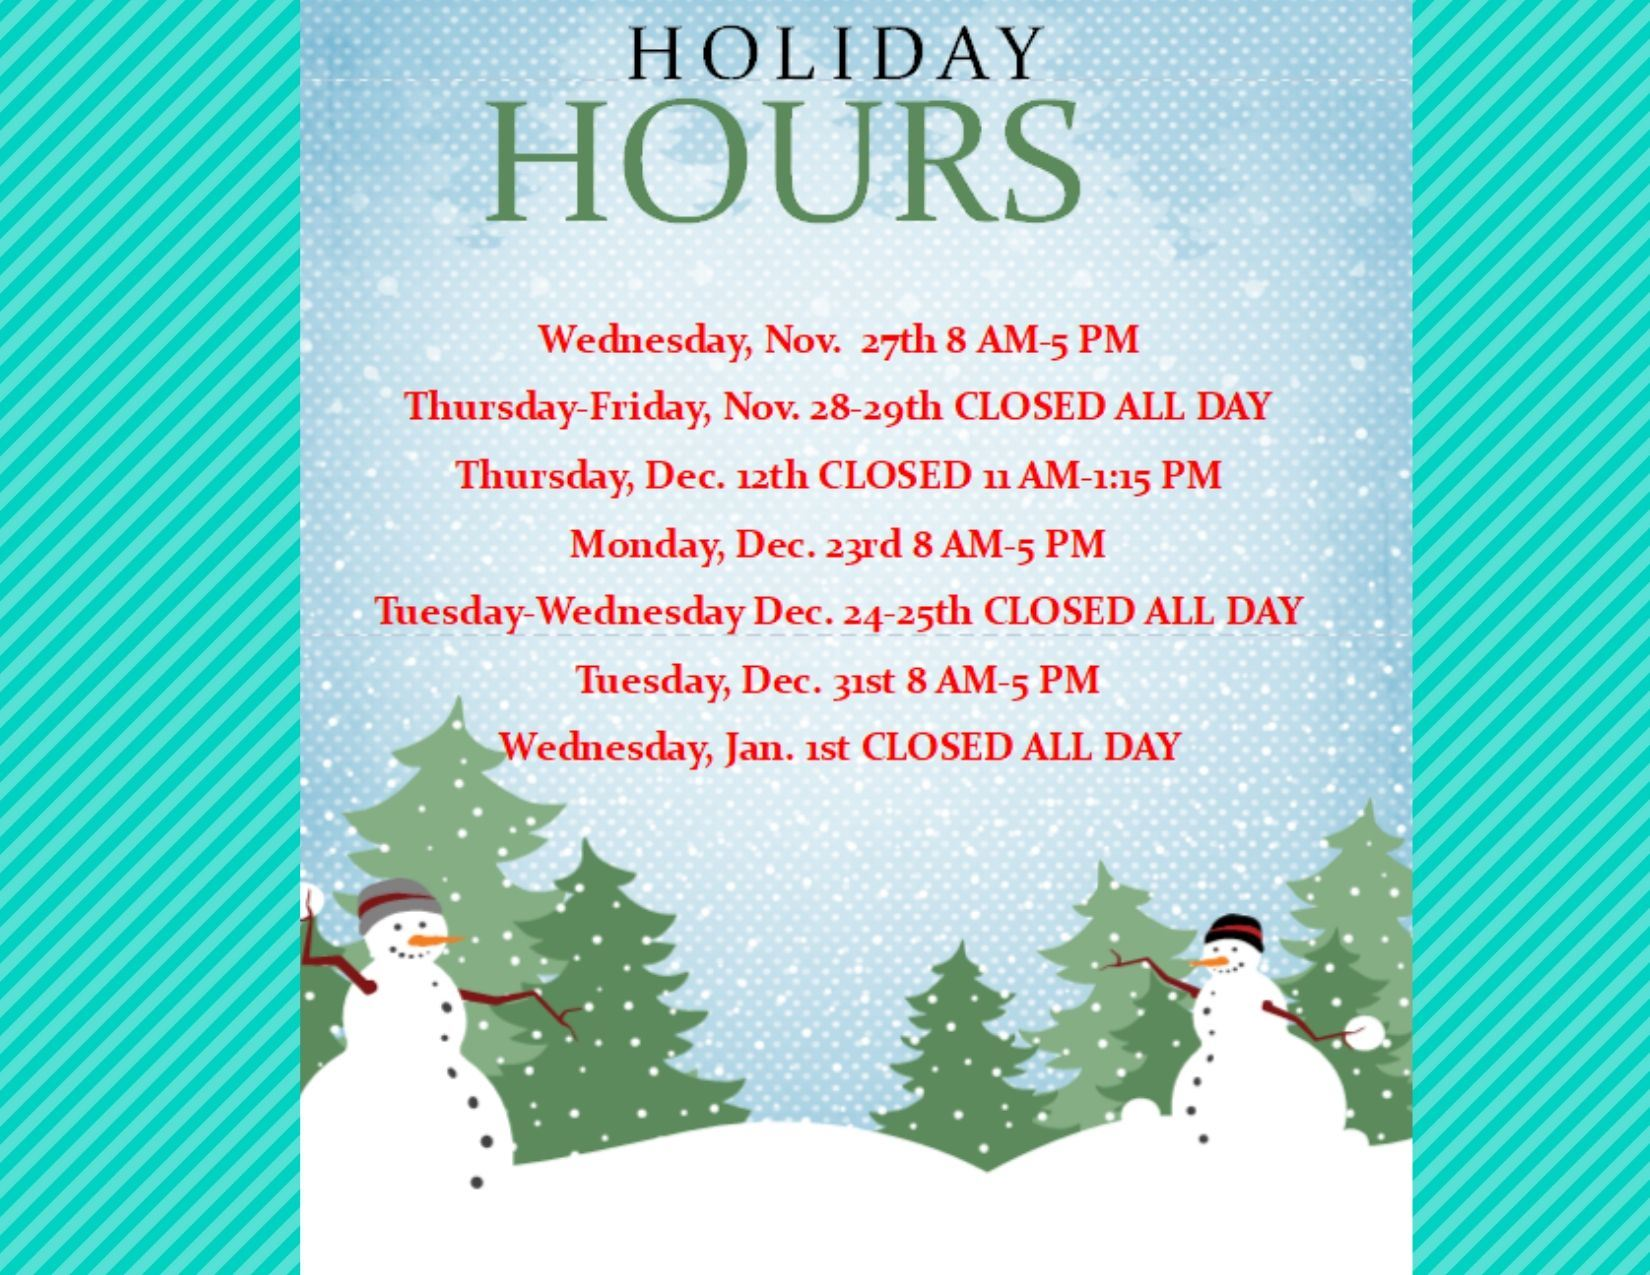 Kilgore Public Library Holiday Hours